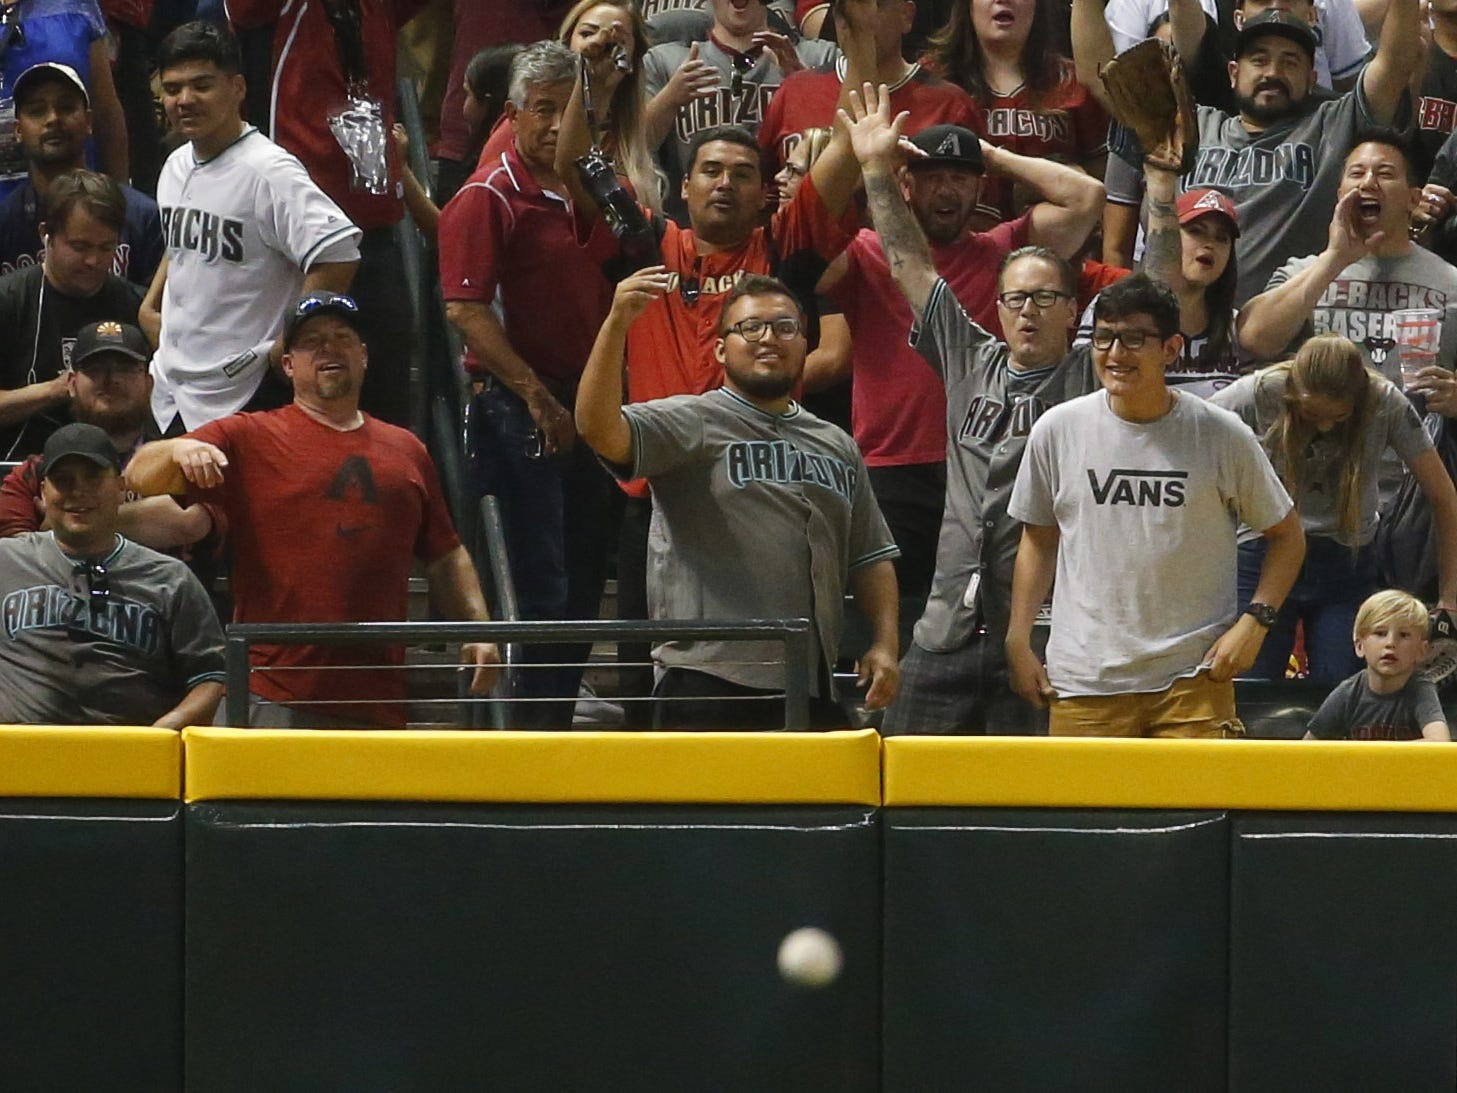 A Arizona Diamondbacks fan throws a Boston Red Sox home run ball back on the field during Opening Day game at Chase Field in Phoenix on April 5.